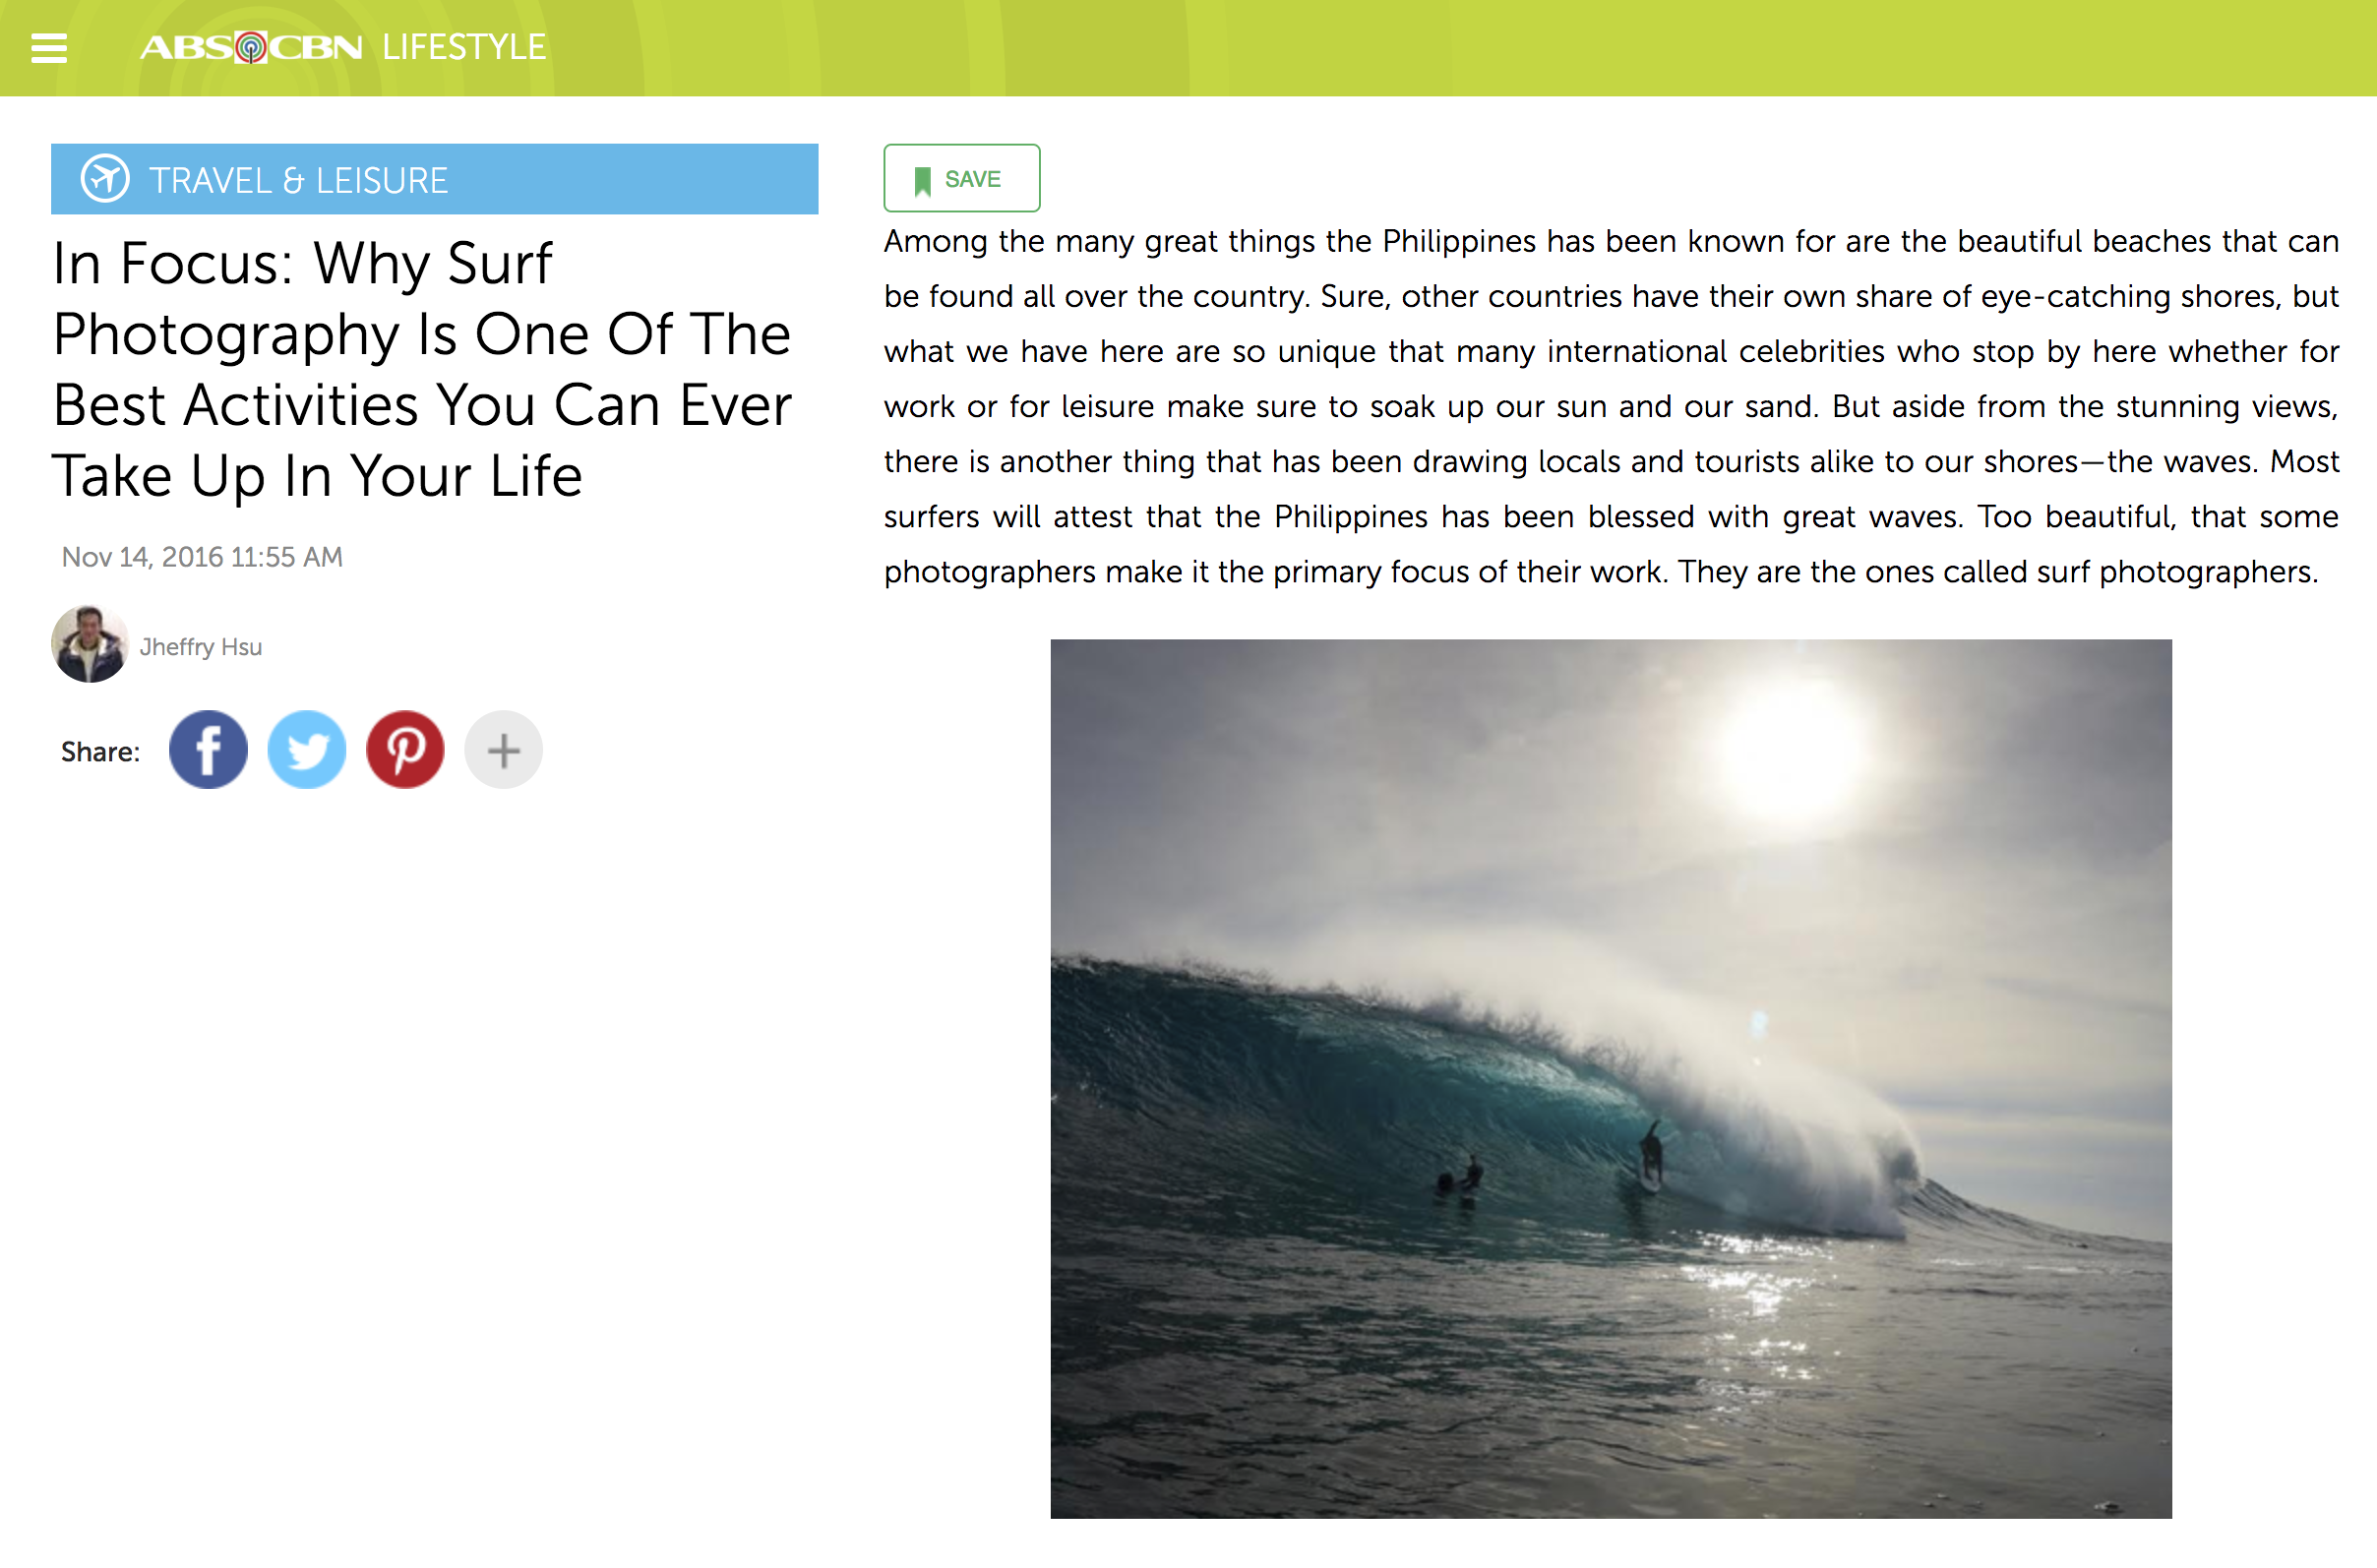 ABS -CBN LIFESTYLE | In Focus: Why Surf Photography Is One Of The Best Activities You Can Ever Take Up In Your Life